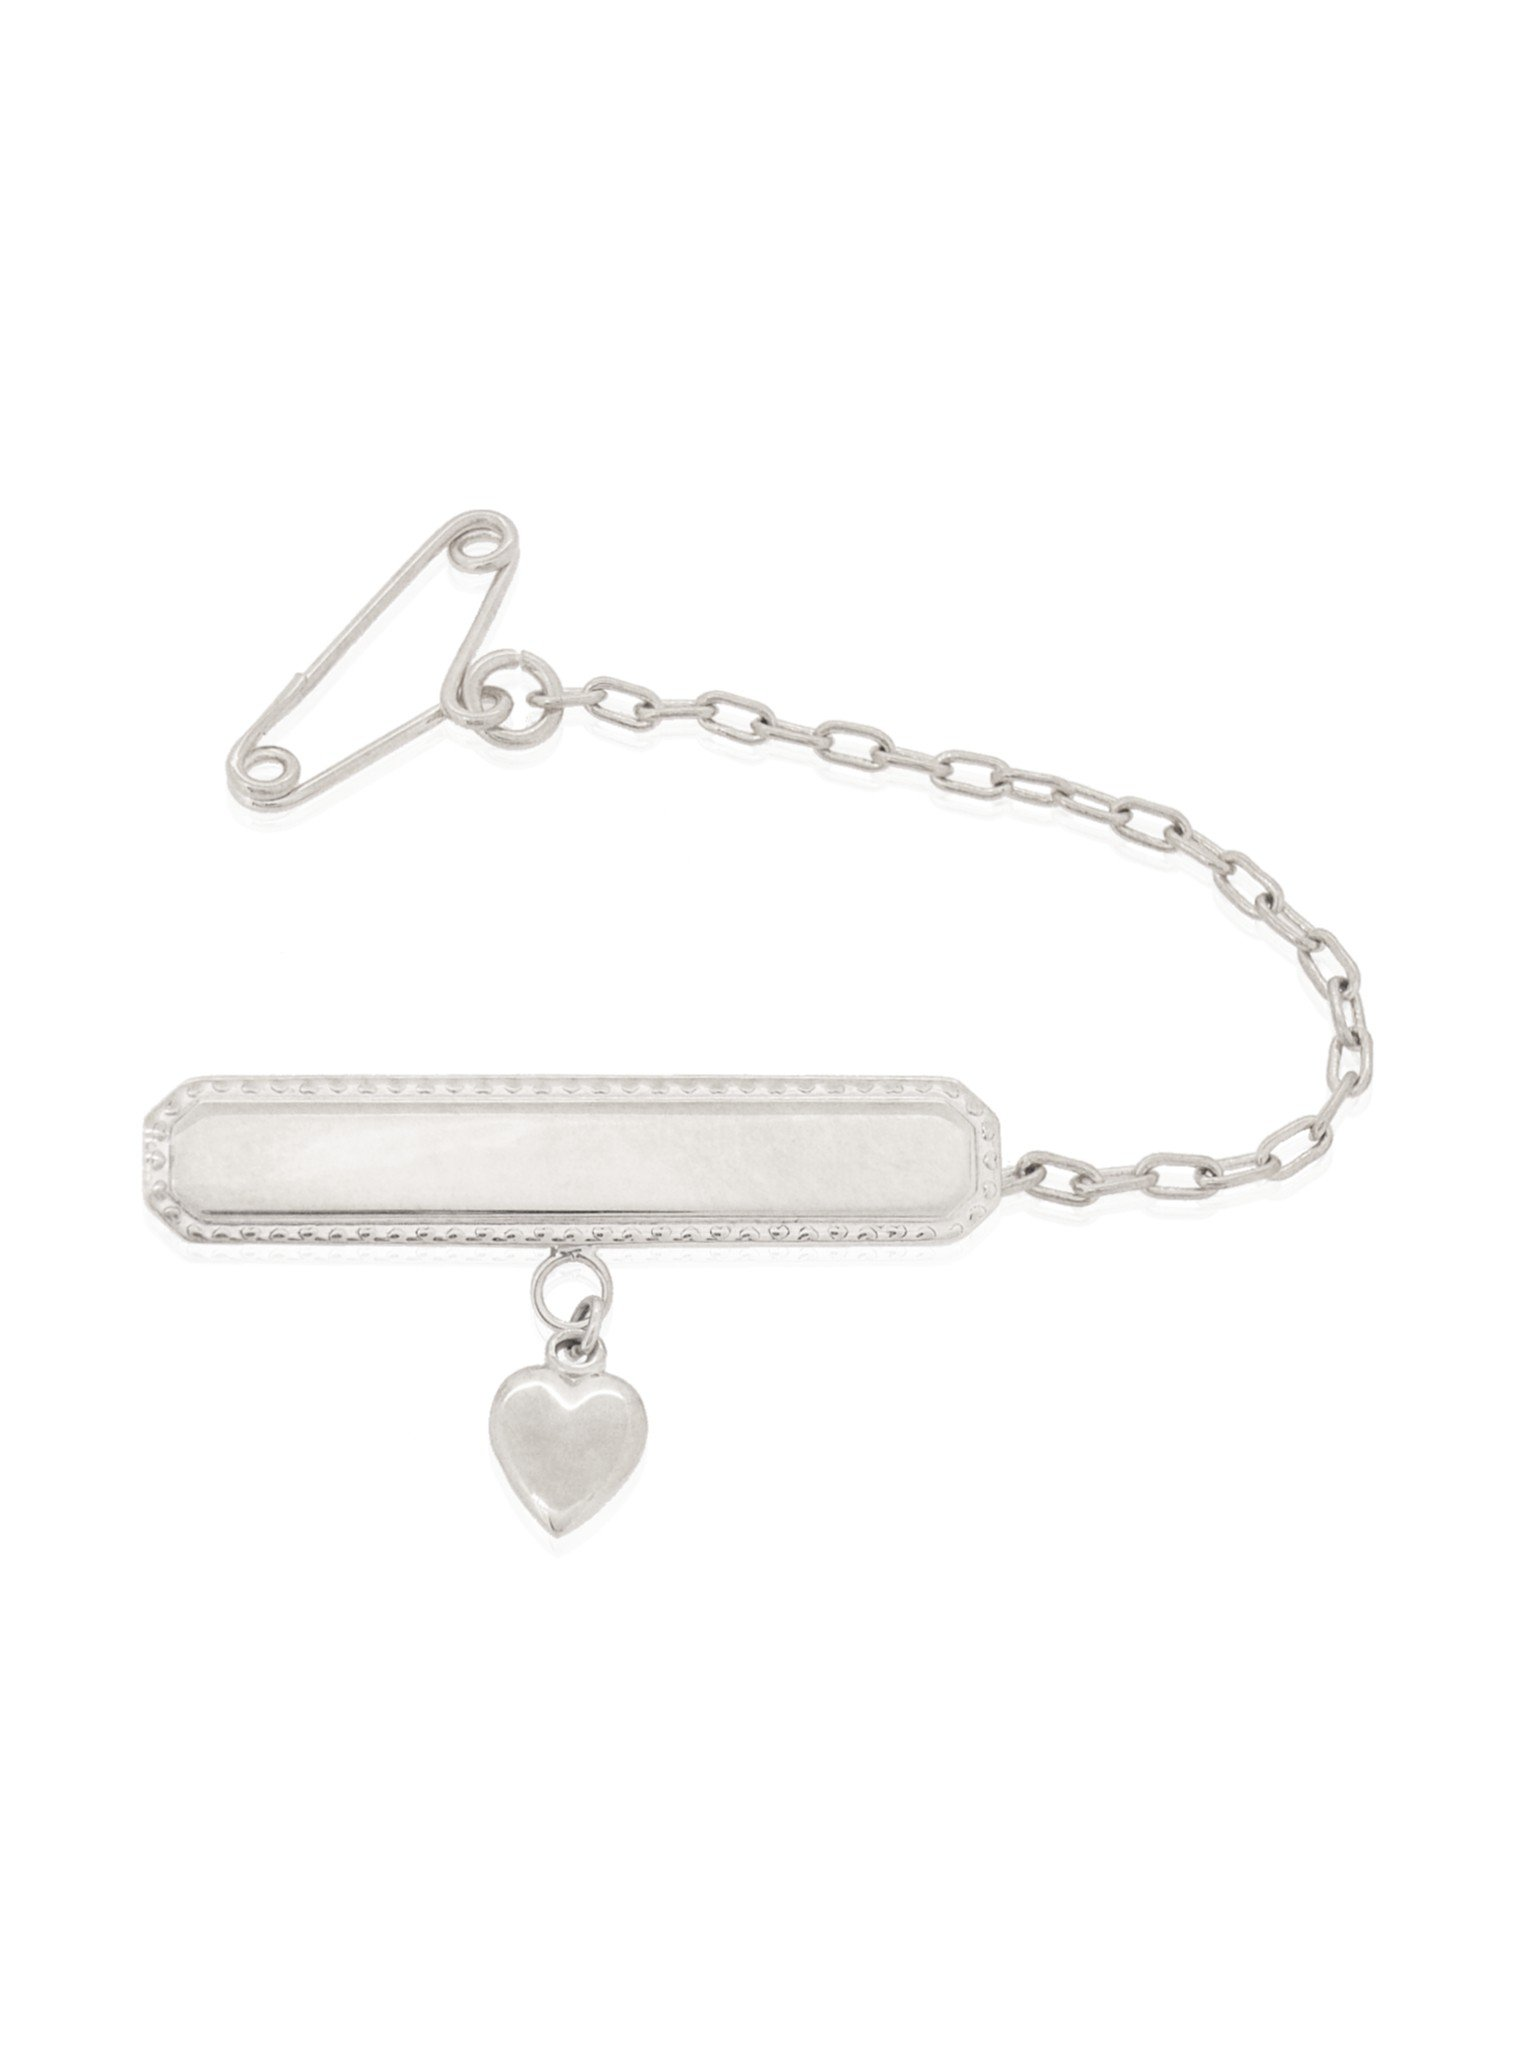 Heart Charm Identity Name Baby Brooch in Sterling Silver